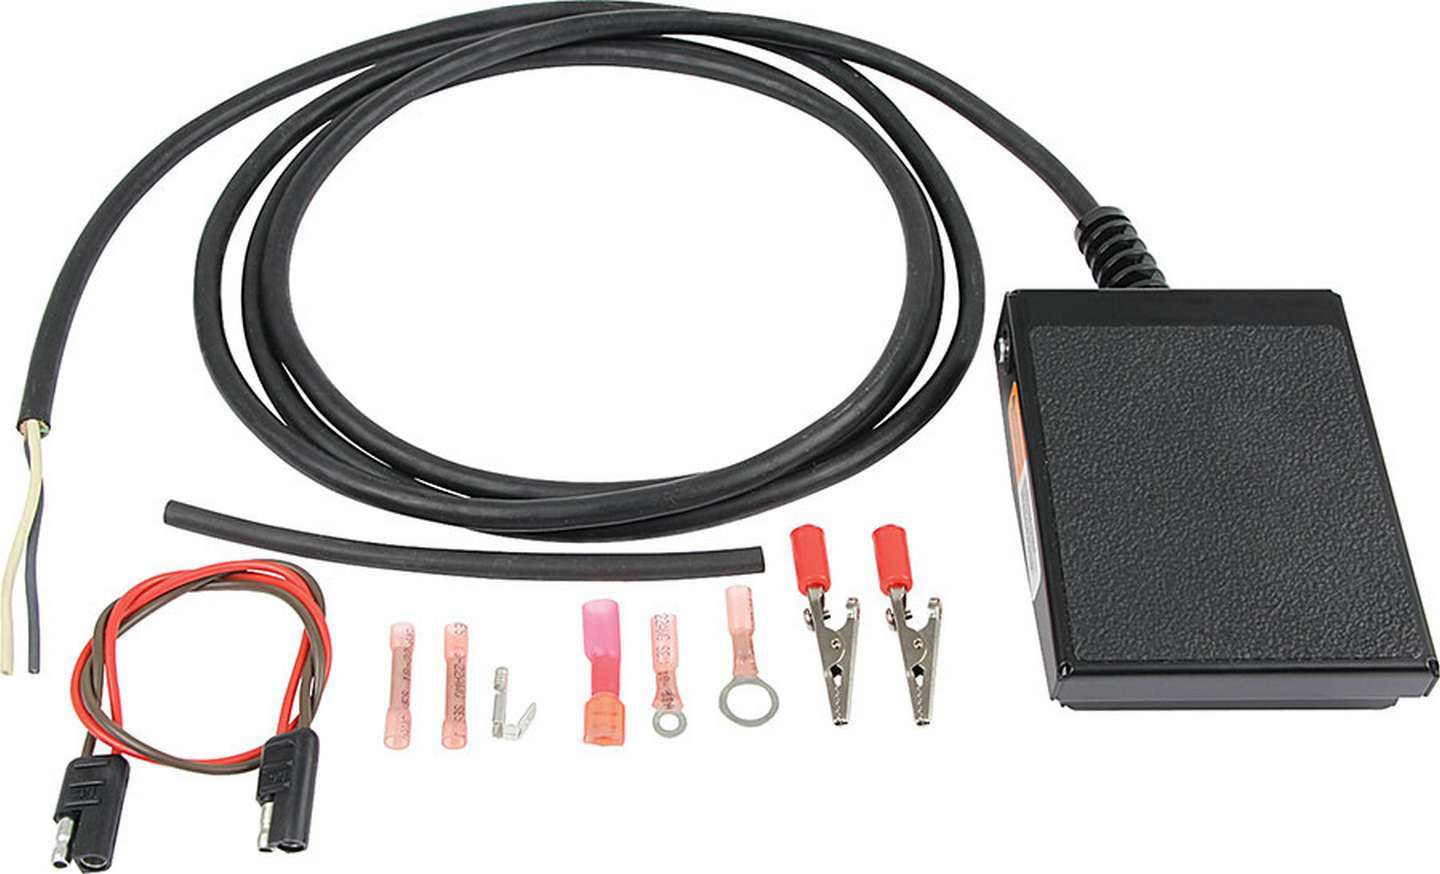 Allstar Performance 76205 Remote Starter Switch, Foot Switch, 8 ft Cord, Hardware Included, Kit